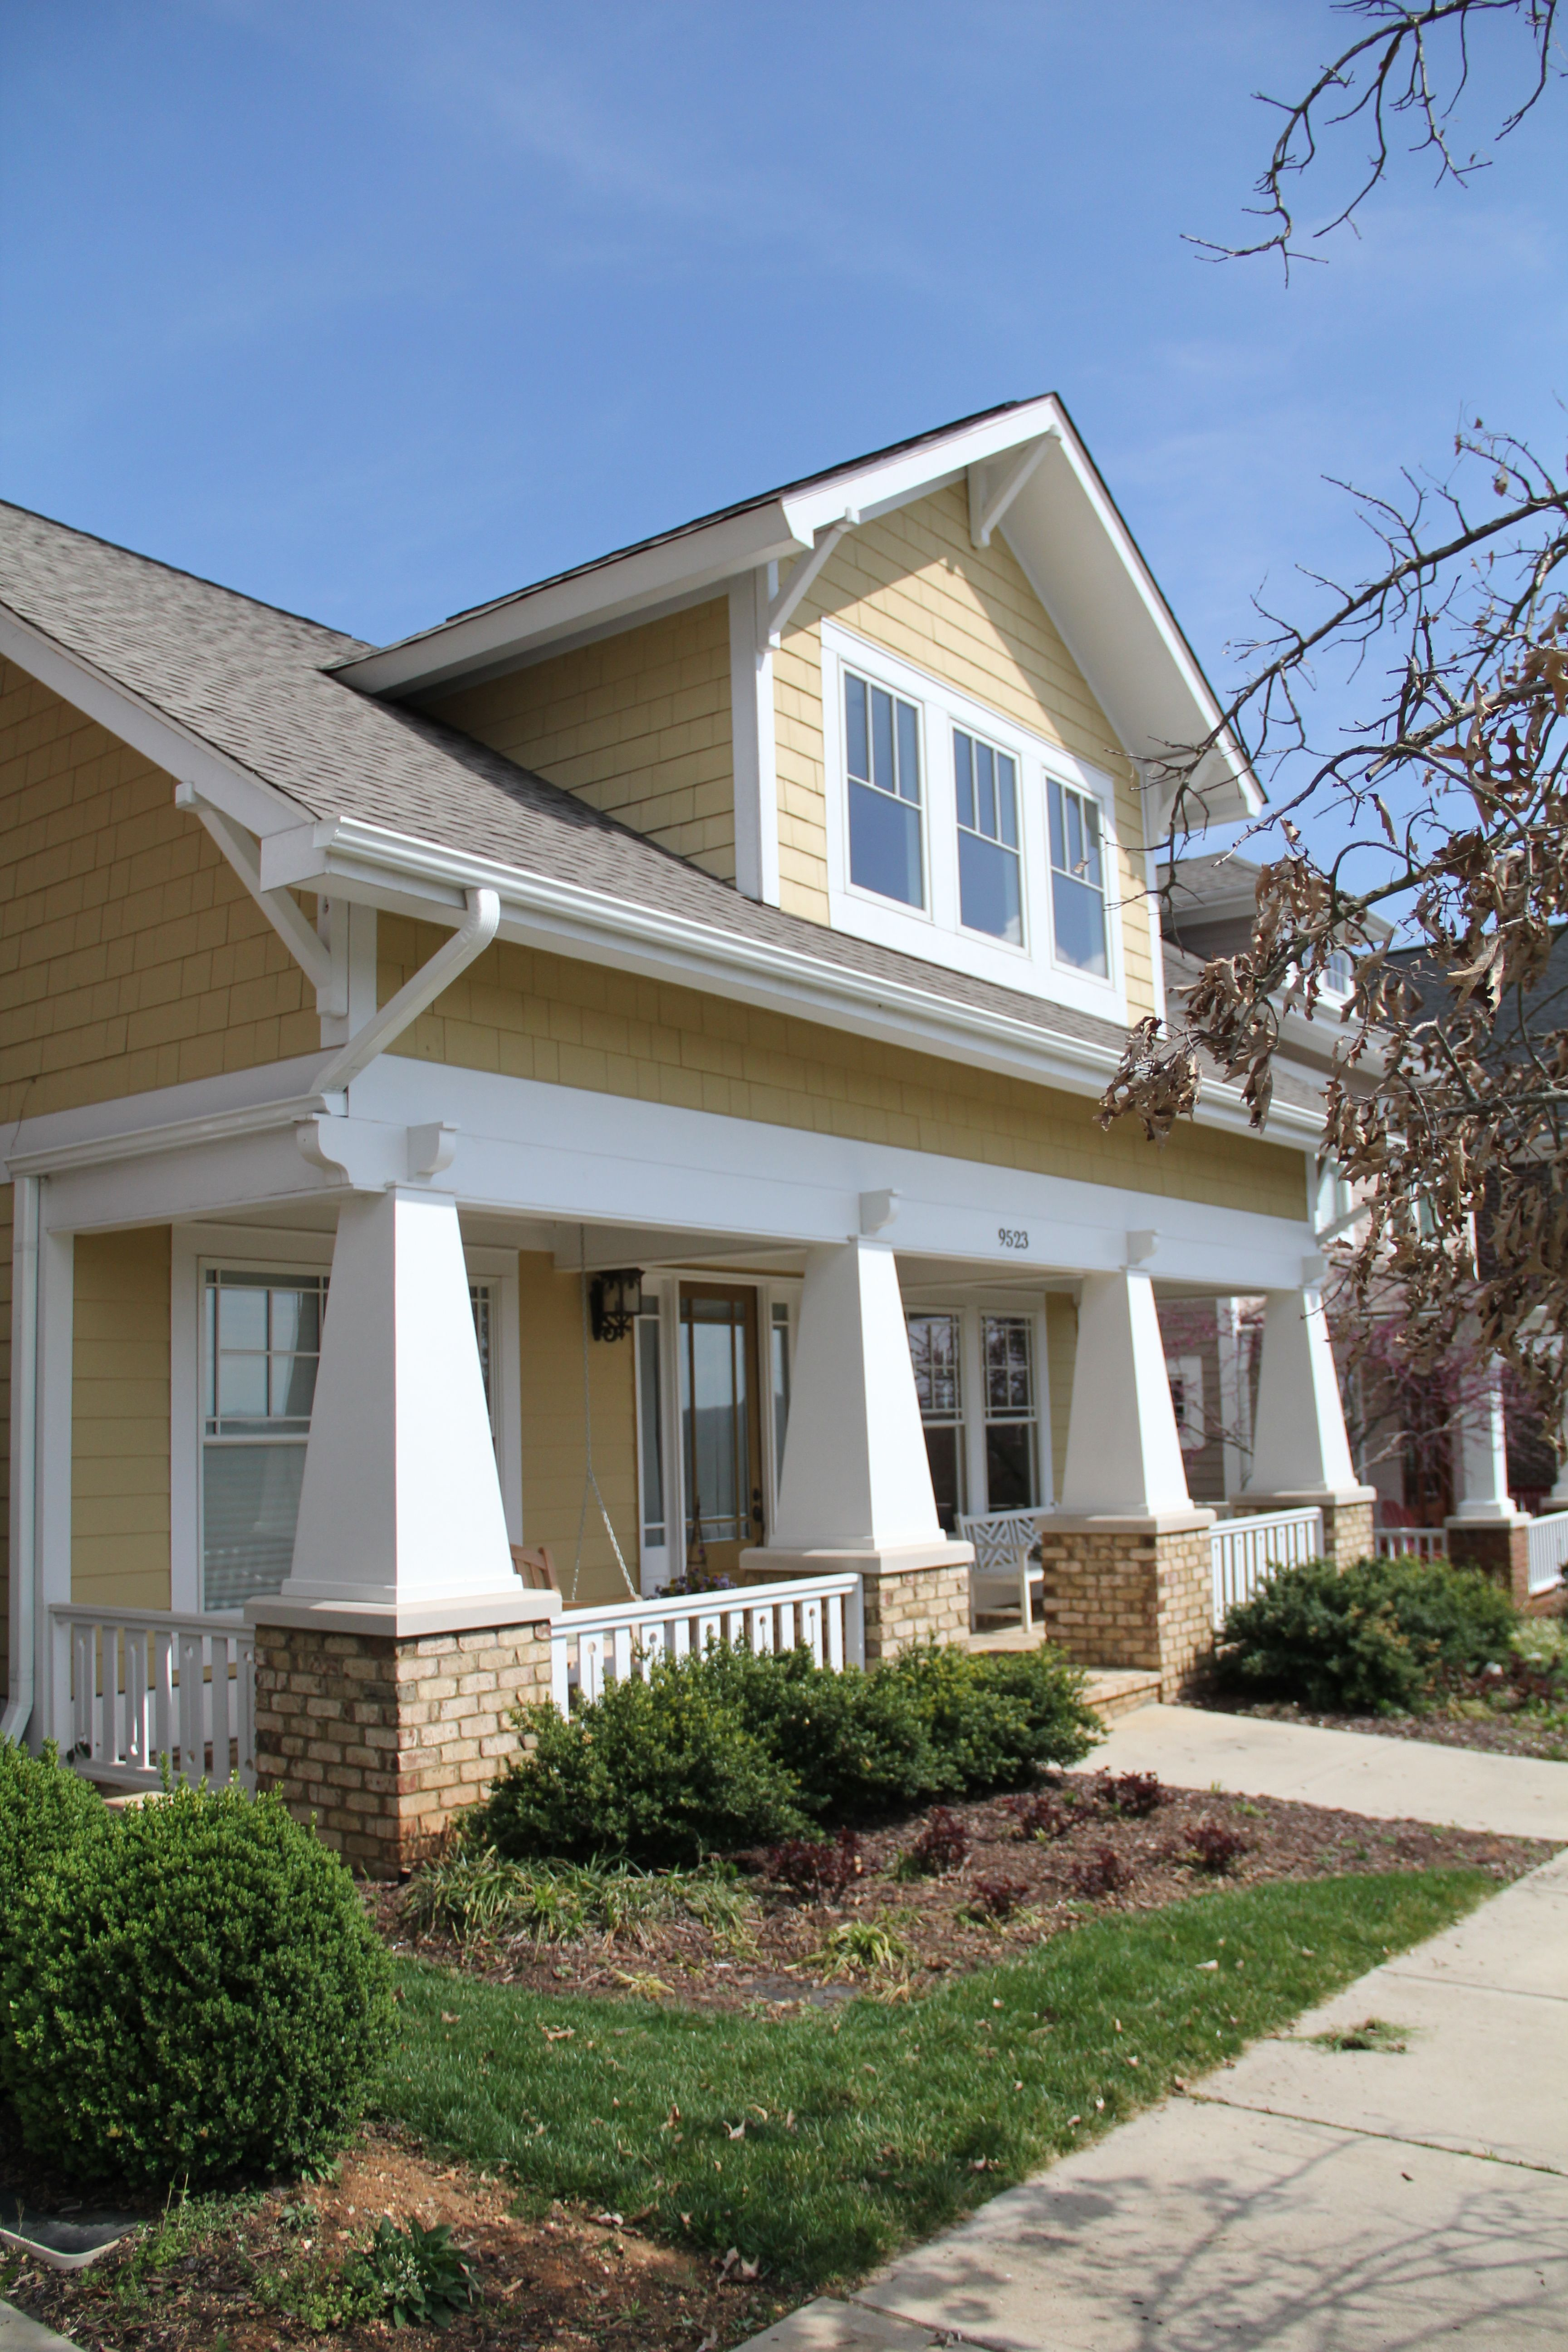 Bungalow Home Exterior Design Ideas: Beautiful Craftsman Style Bungalow In The Northshore Town